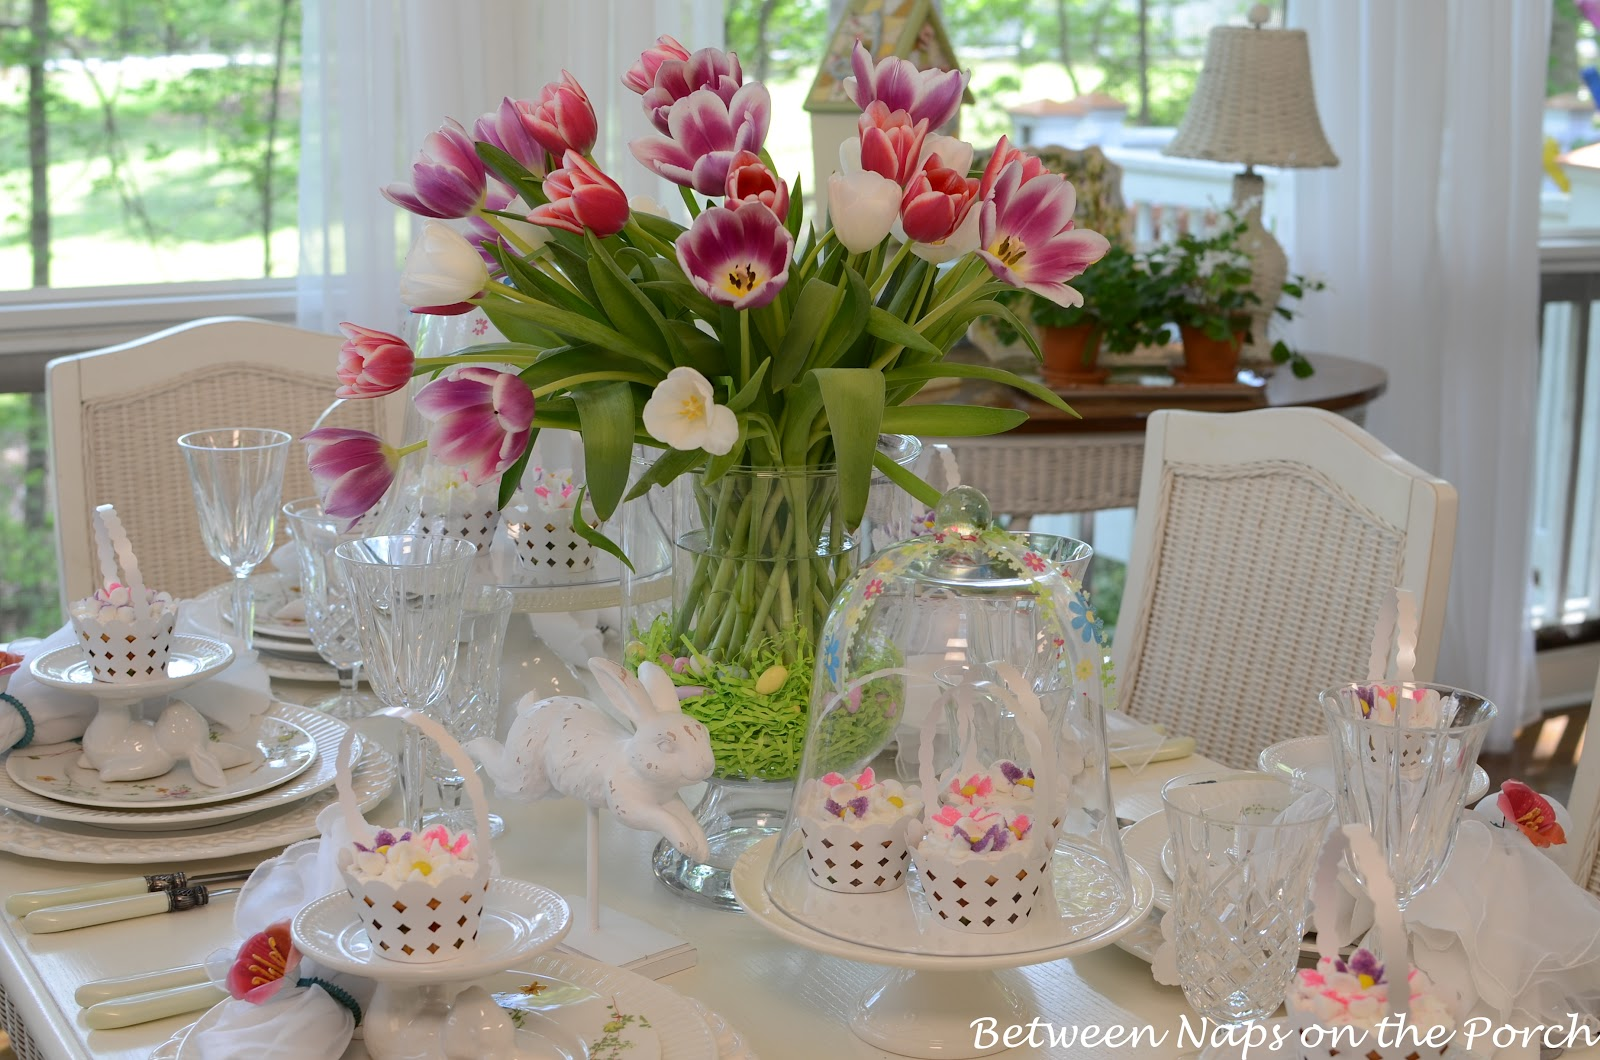 Easter Table Spring Setting With Tulip Centerpiece And